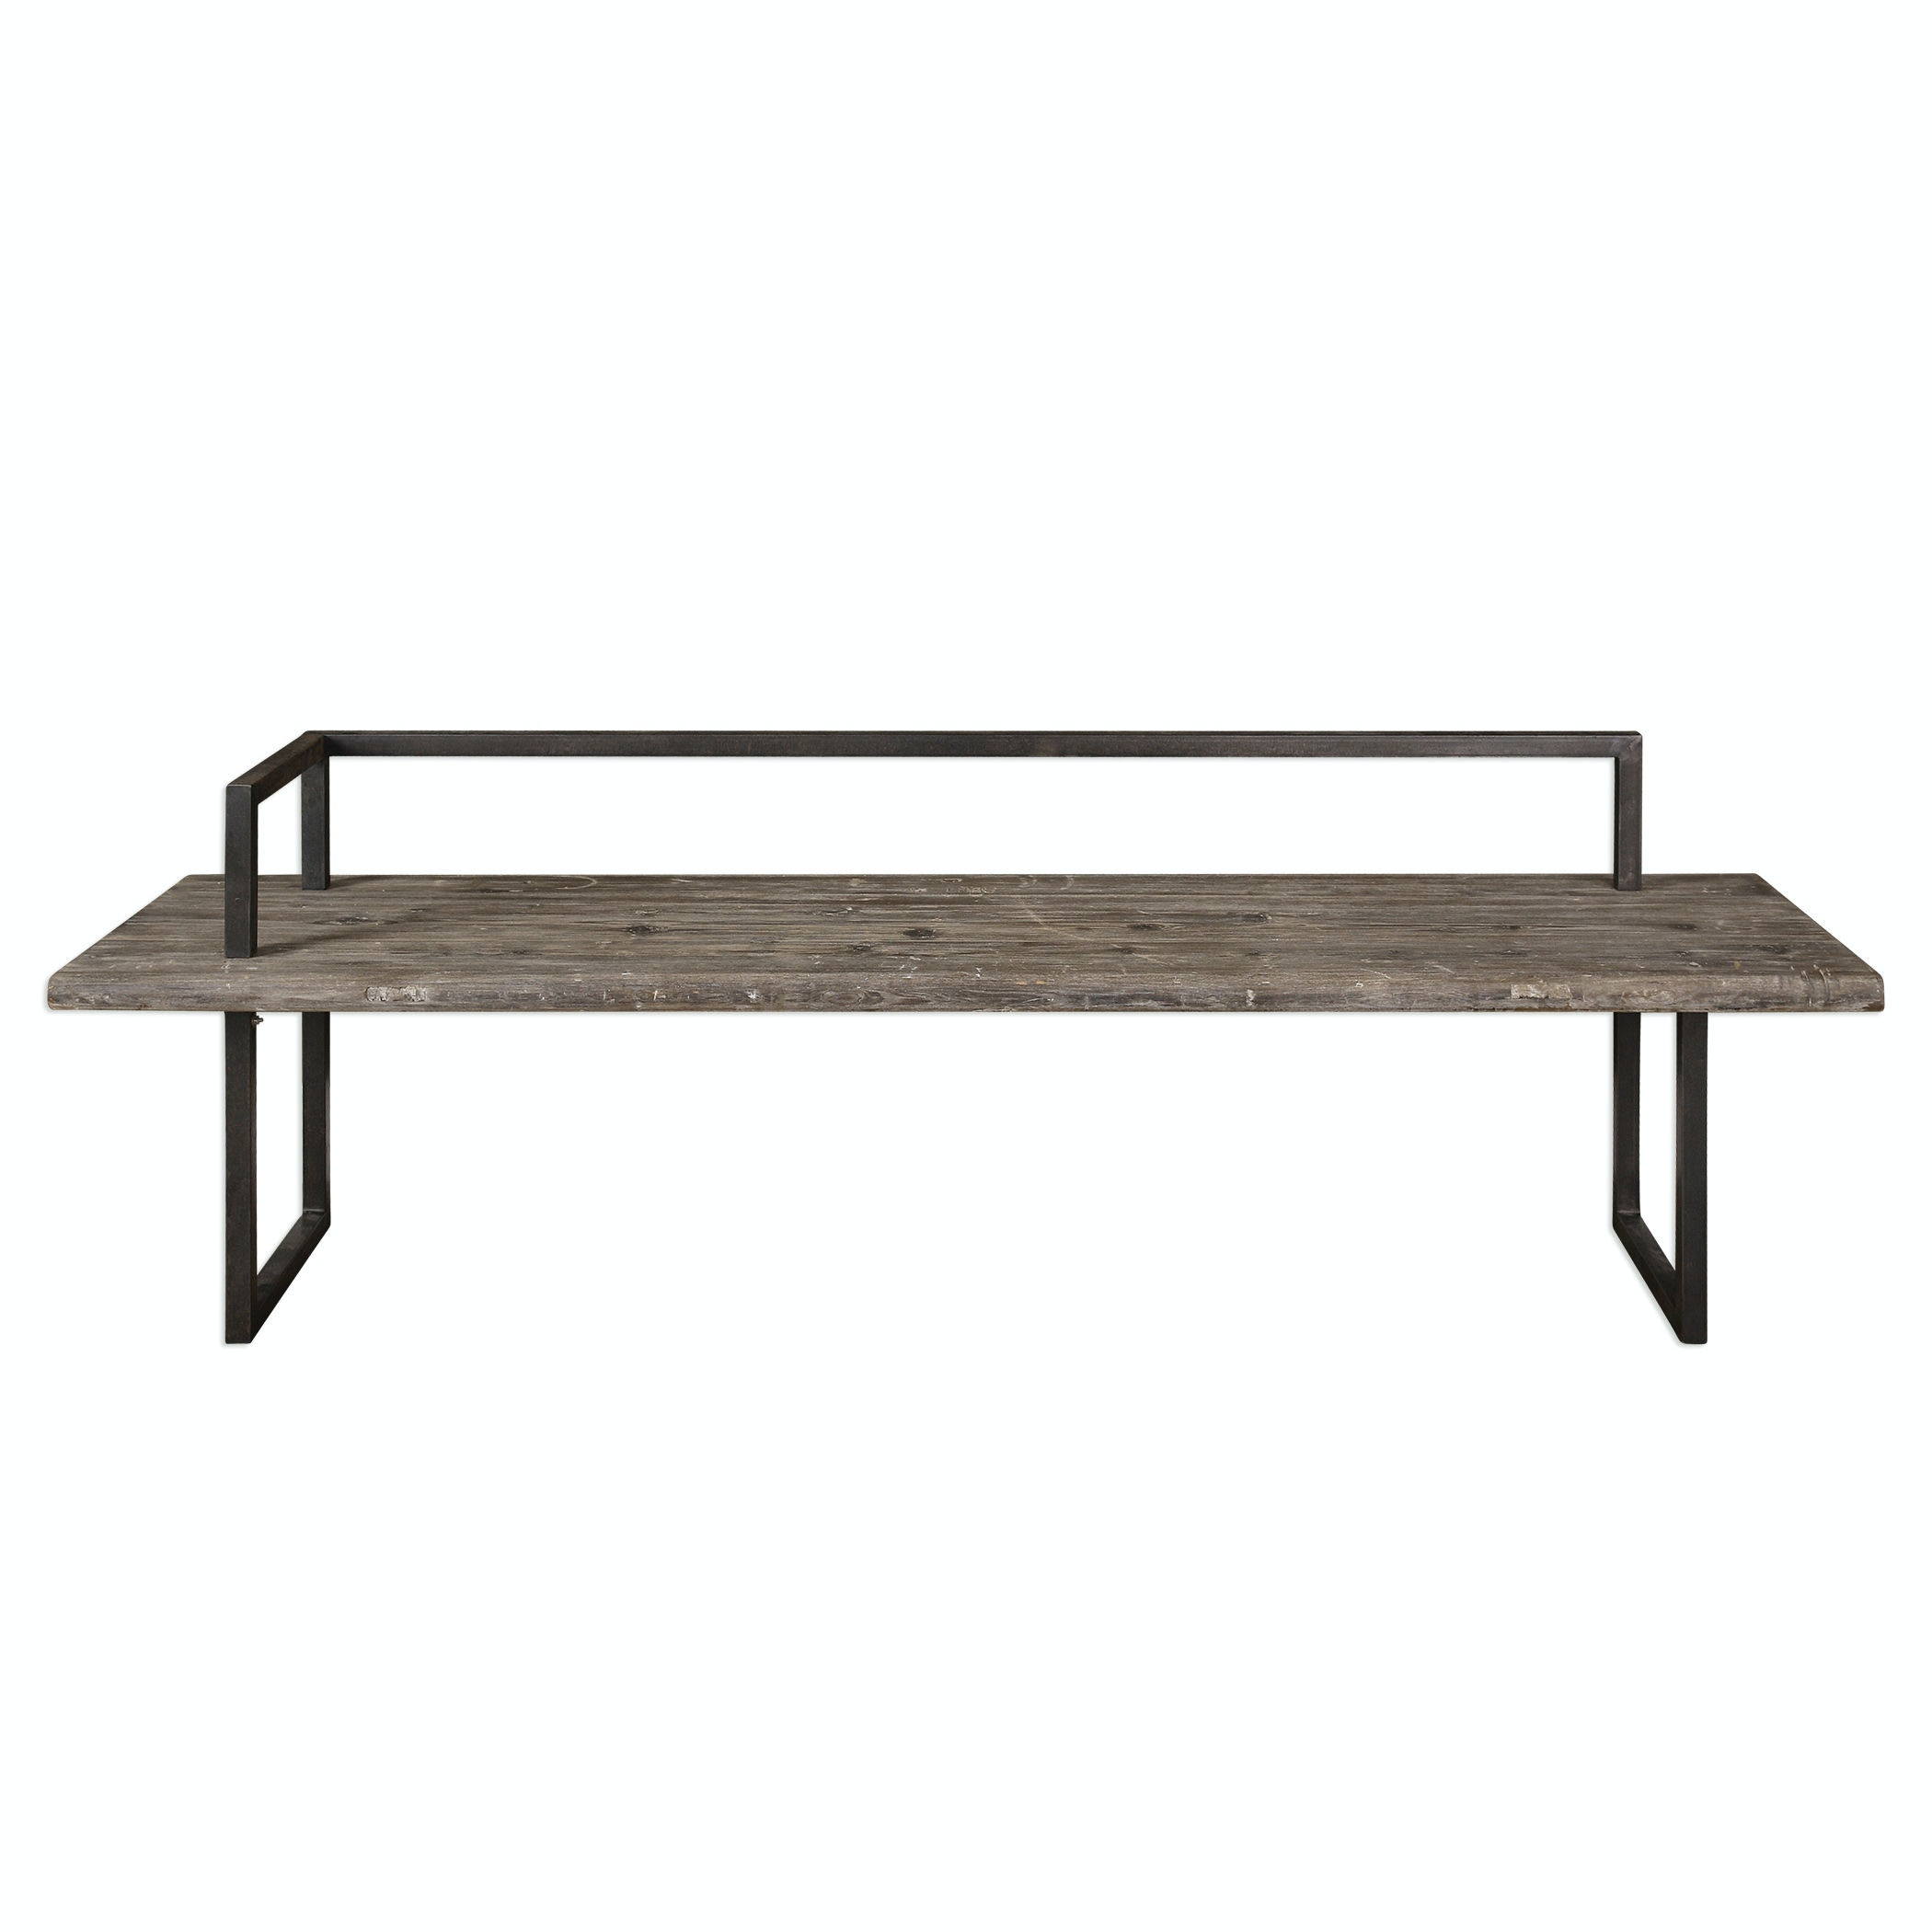 Awesome Uttermost Herbert Reclaimed Wood Bench 24701